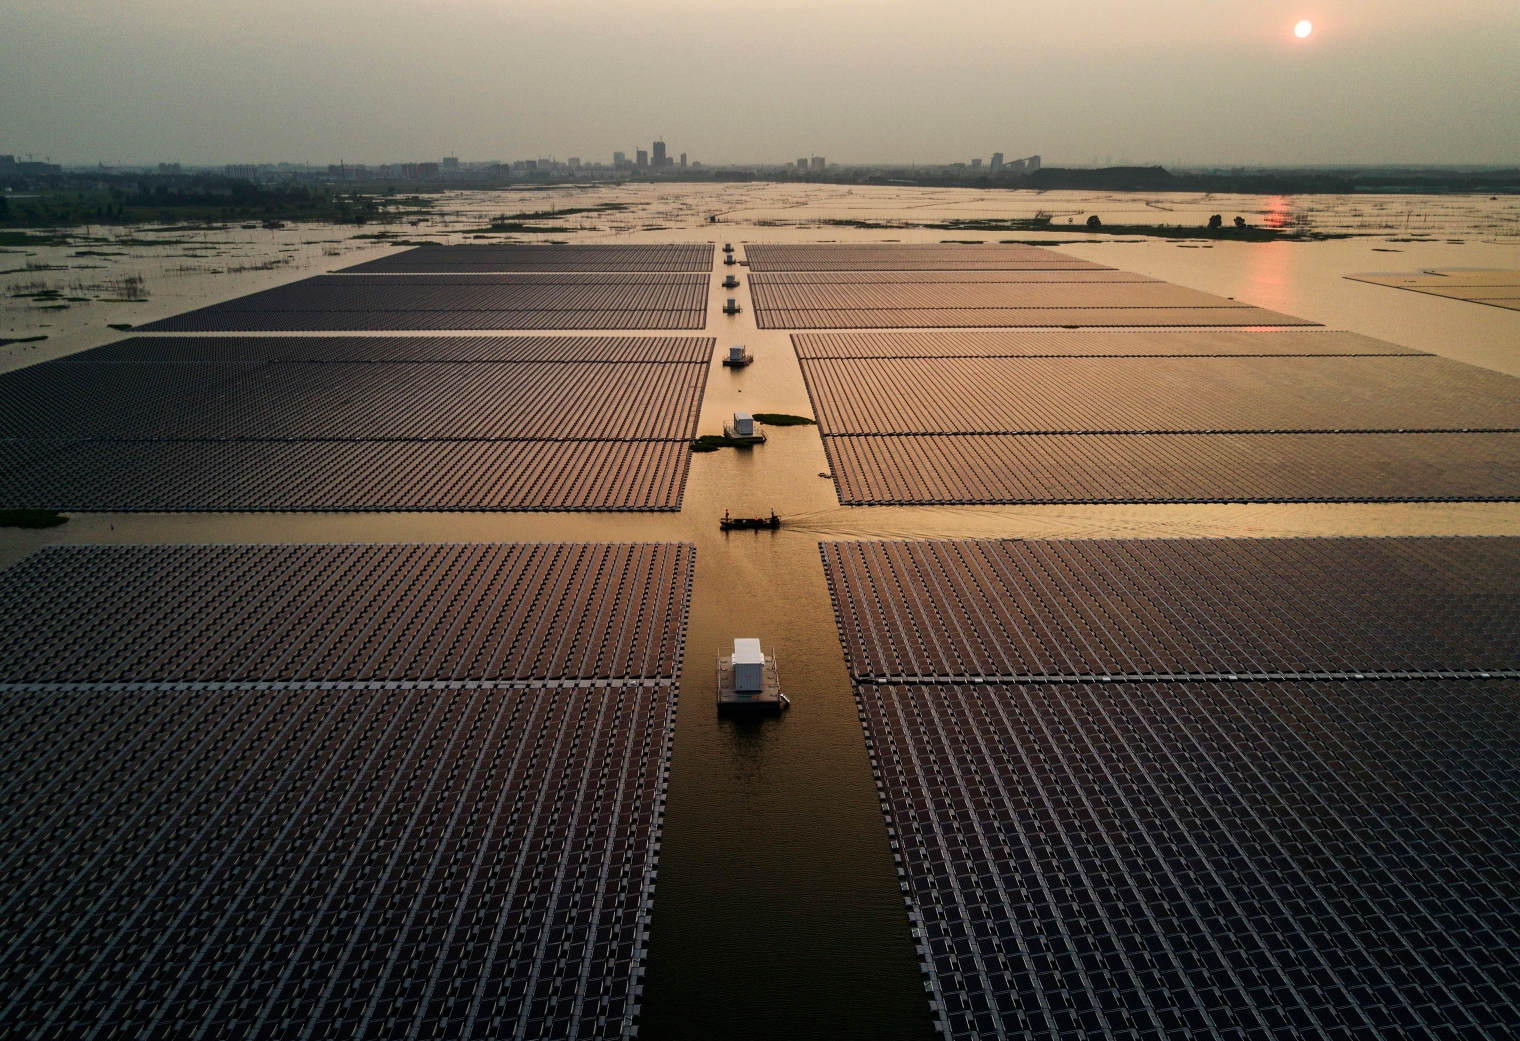 Workers ride in a boat through a large floating solar farm project.